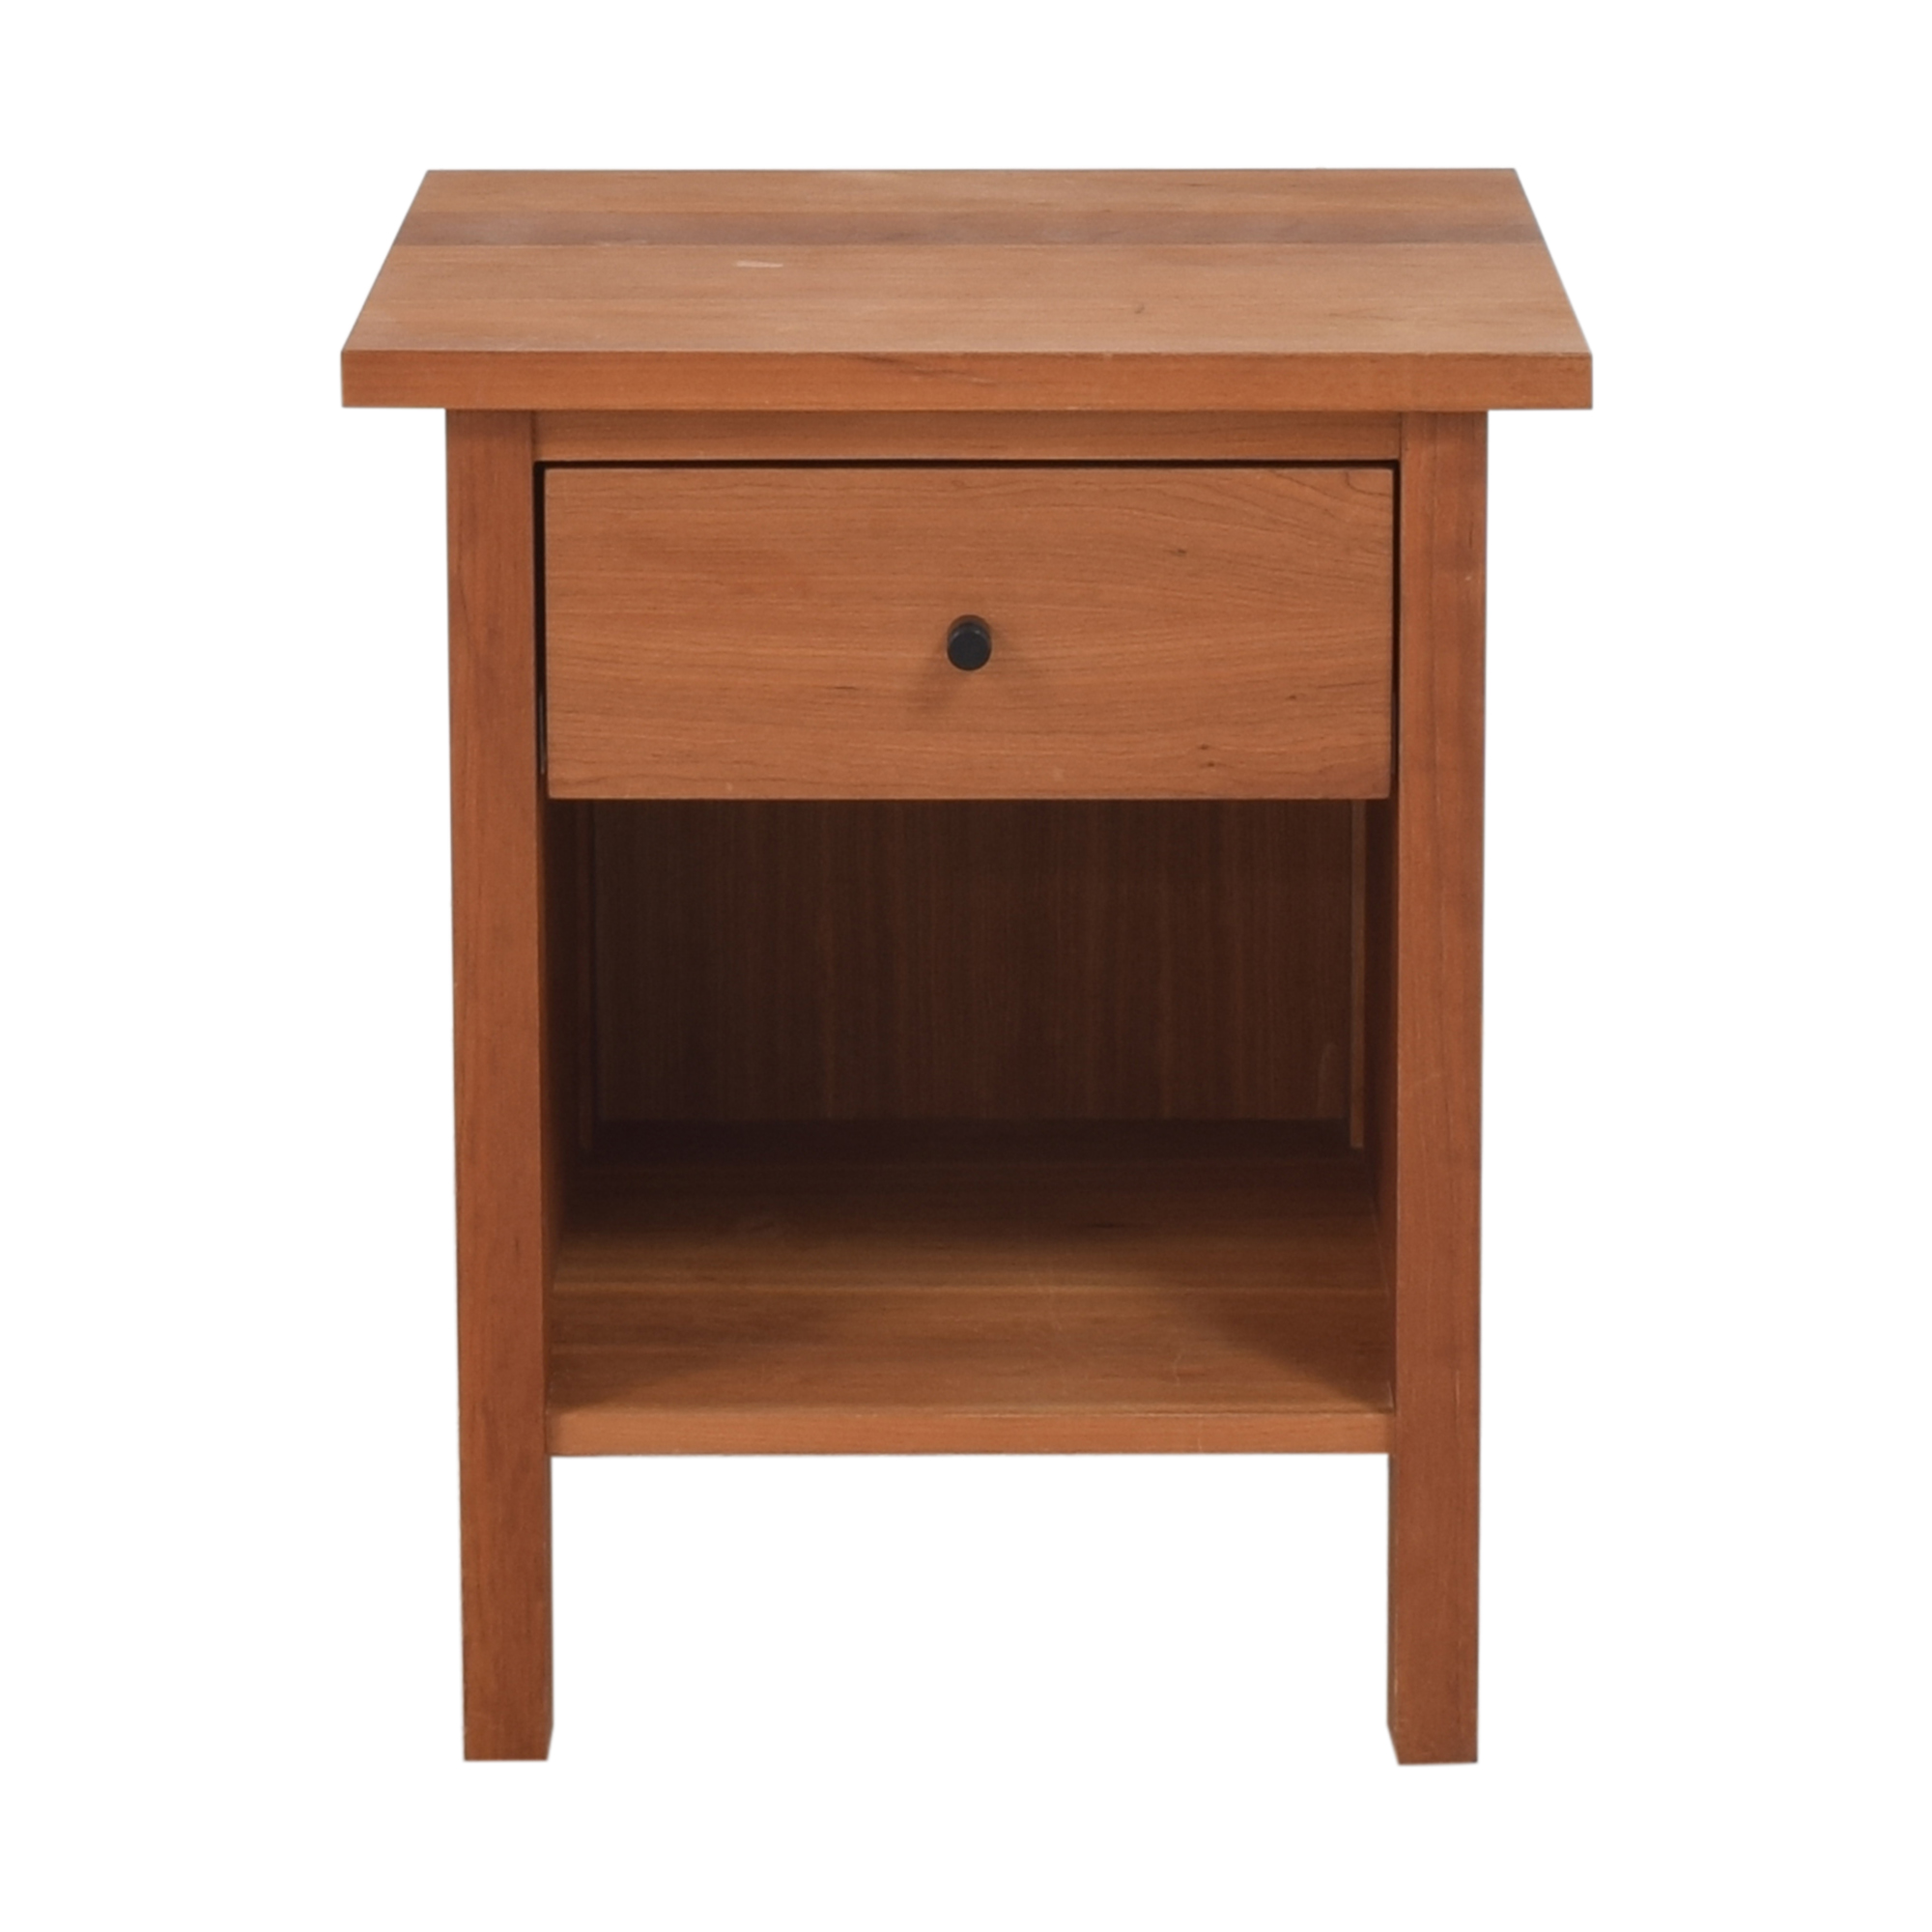 Room & Board Room & Board Sherwood Single Drawer Nightstand nyc